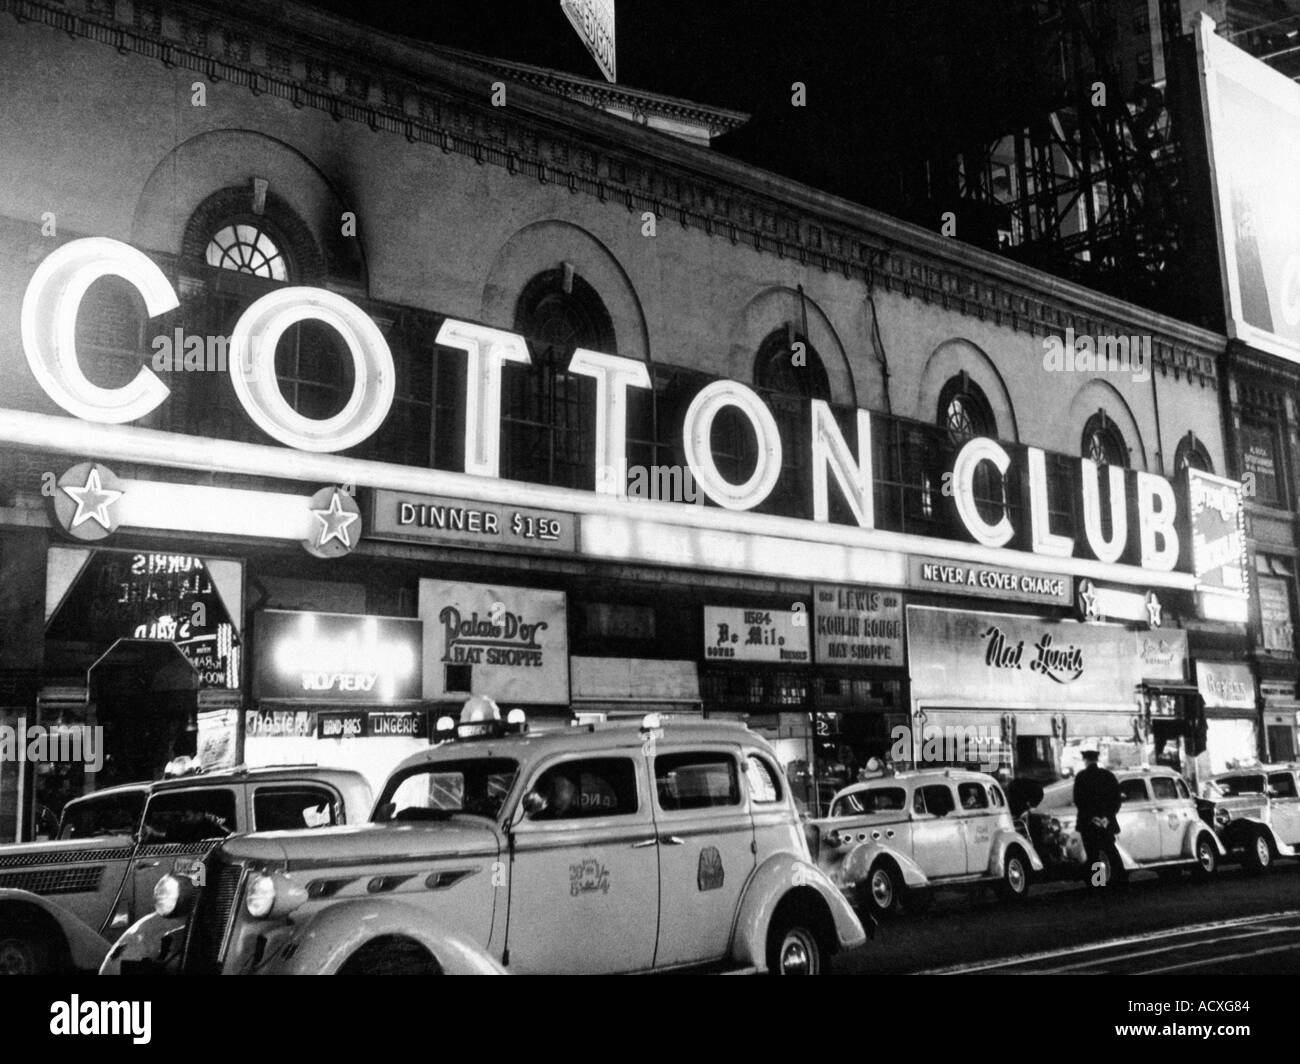 COTTON CLUB in New York s Harlem at 42nd Street and Lennox Avenue was a top dinner club in the 1930s and 40s where many famous a - Stock Image